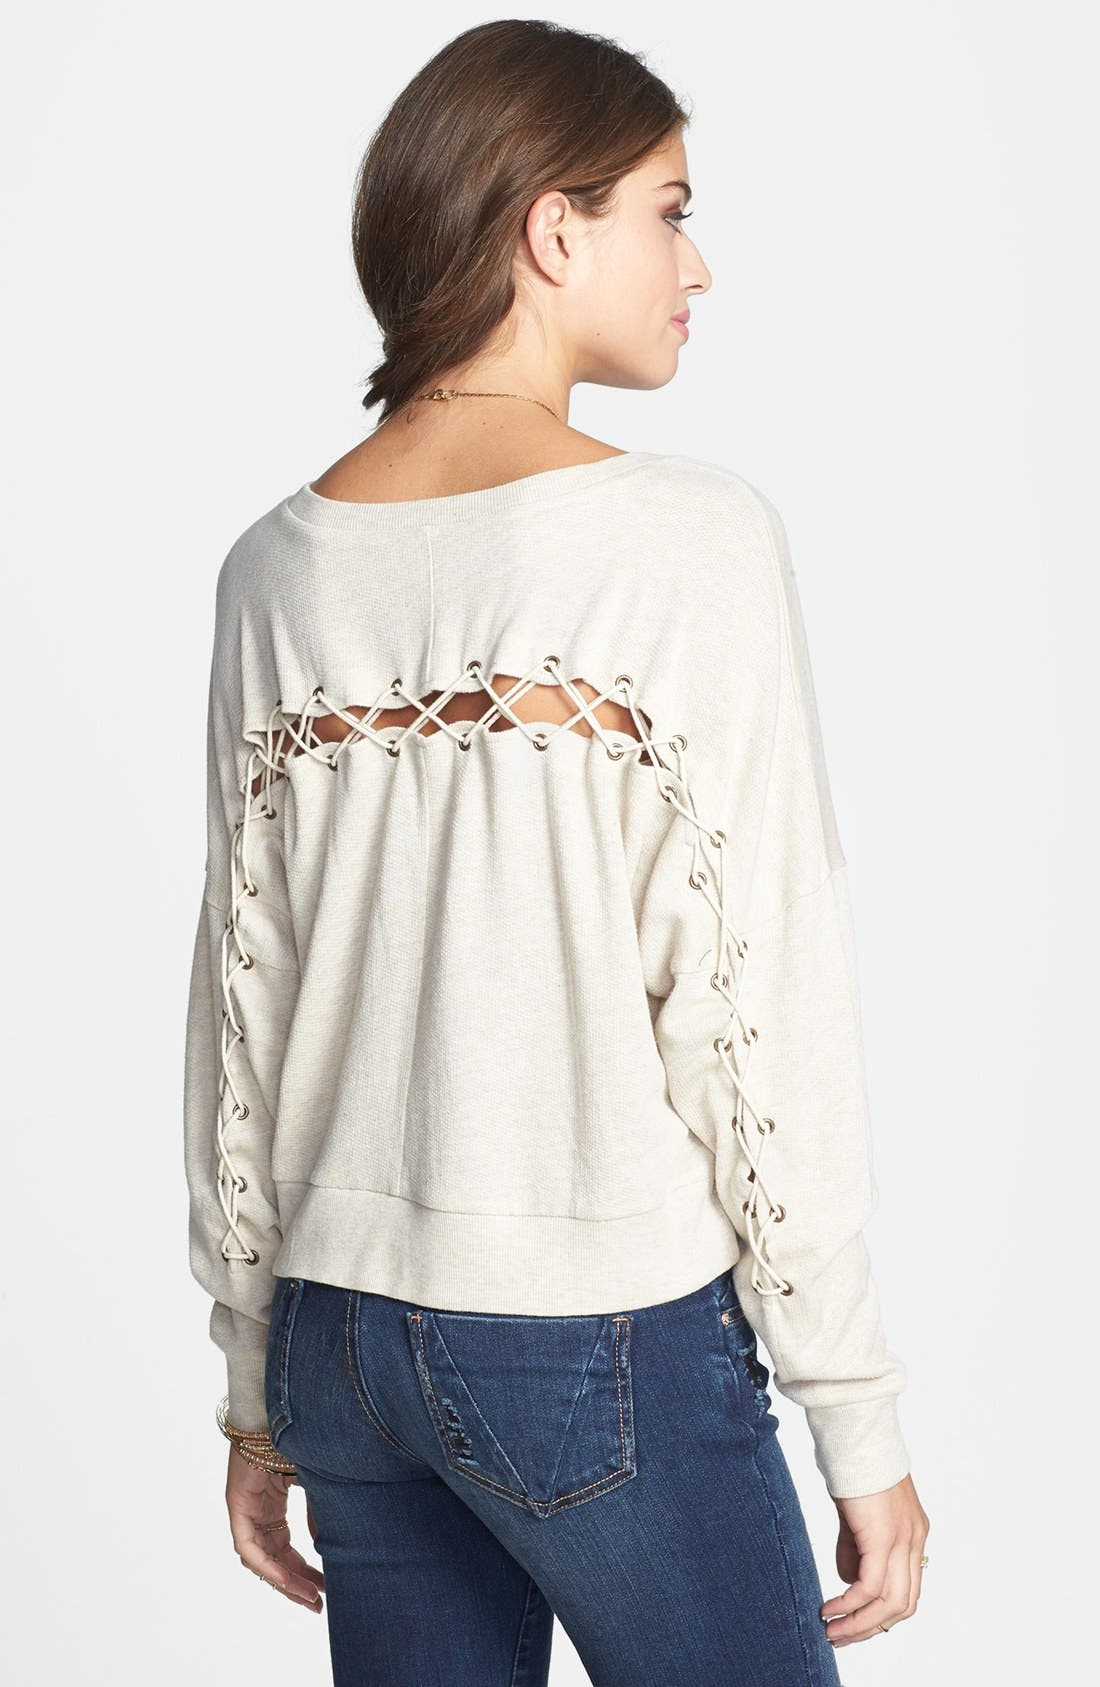 Alternate Image 1 Selected - BP. Lace Up Crop Sweatshirt (Juniors)